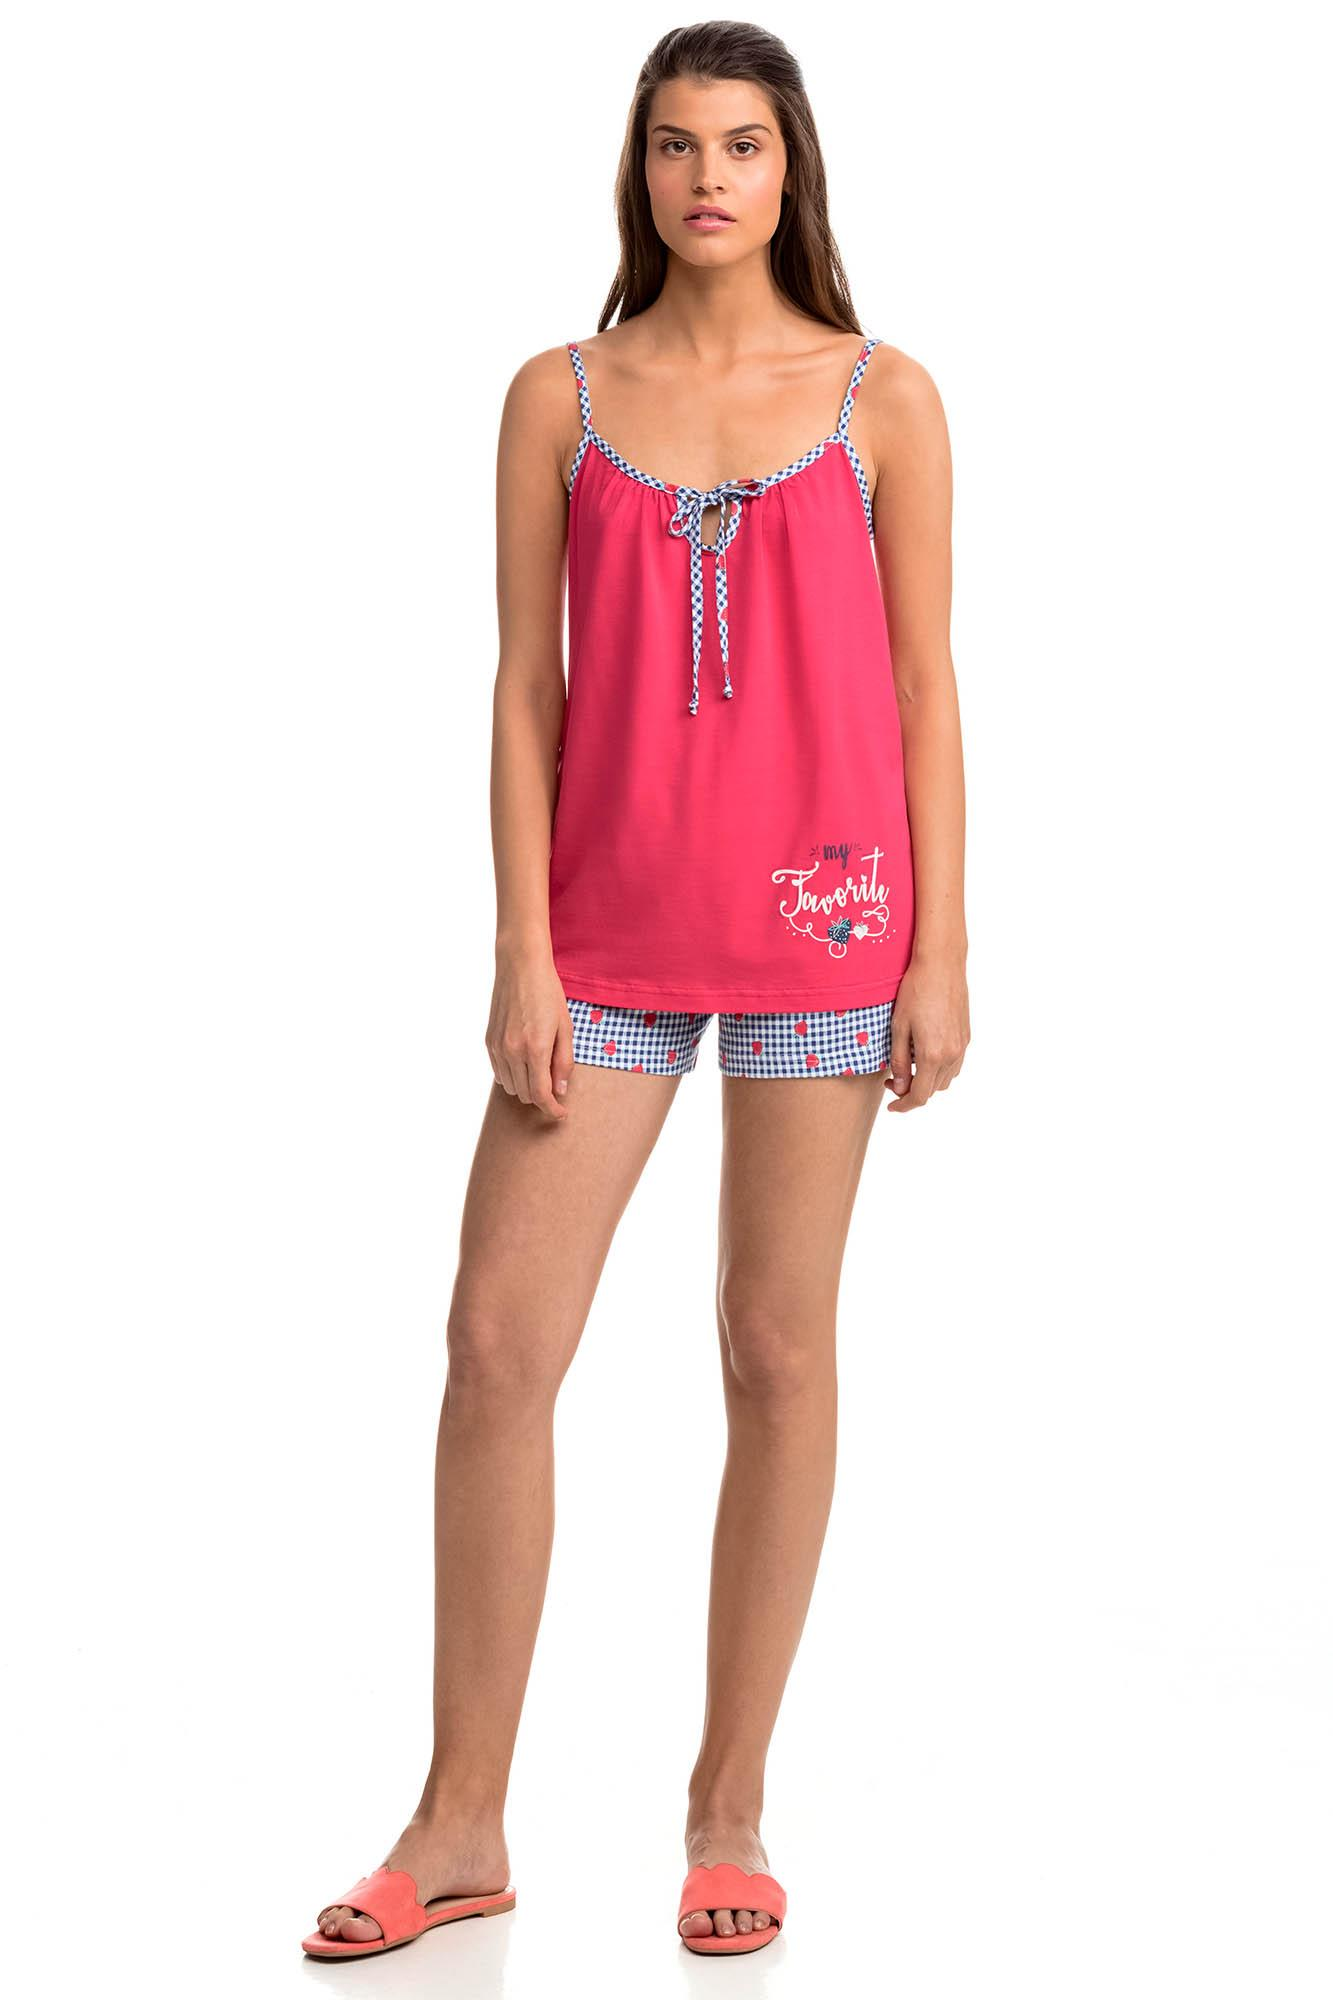 Women's Top and Shorts Pyjamas